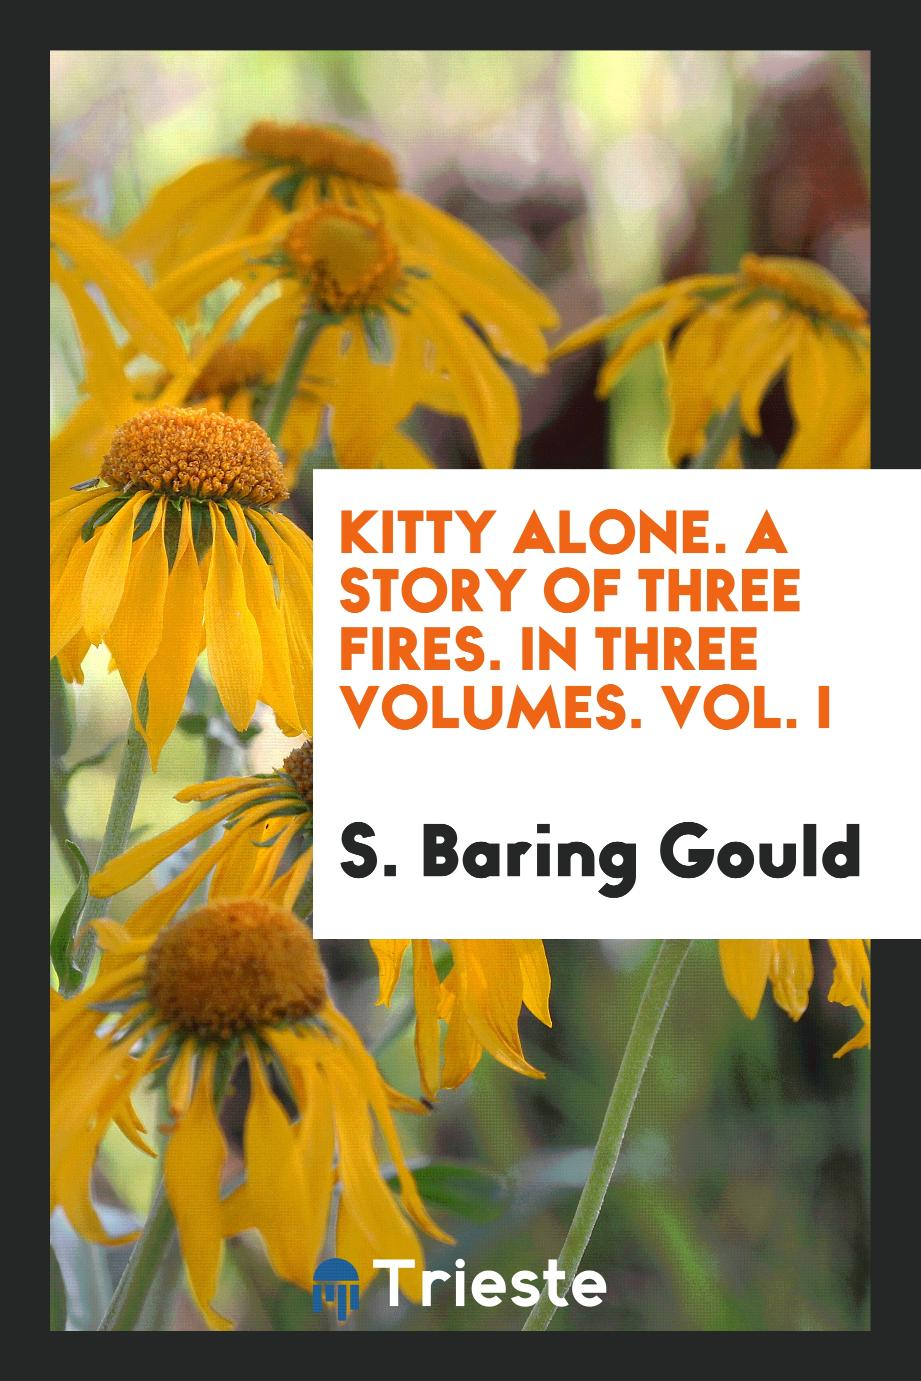 Kitty alone. A story of three fires. In three volumes. Vol. I